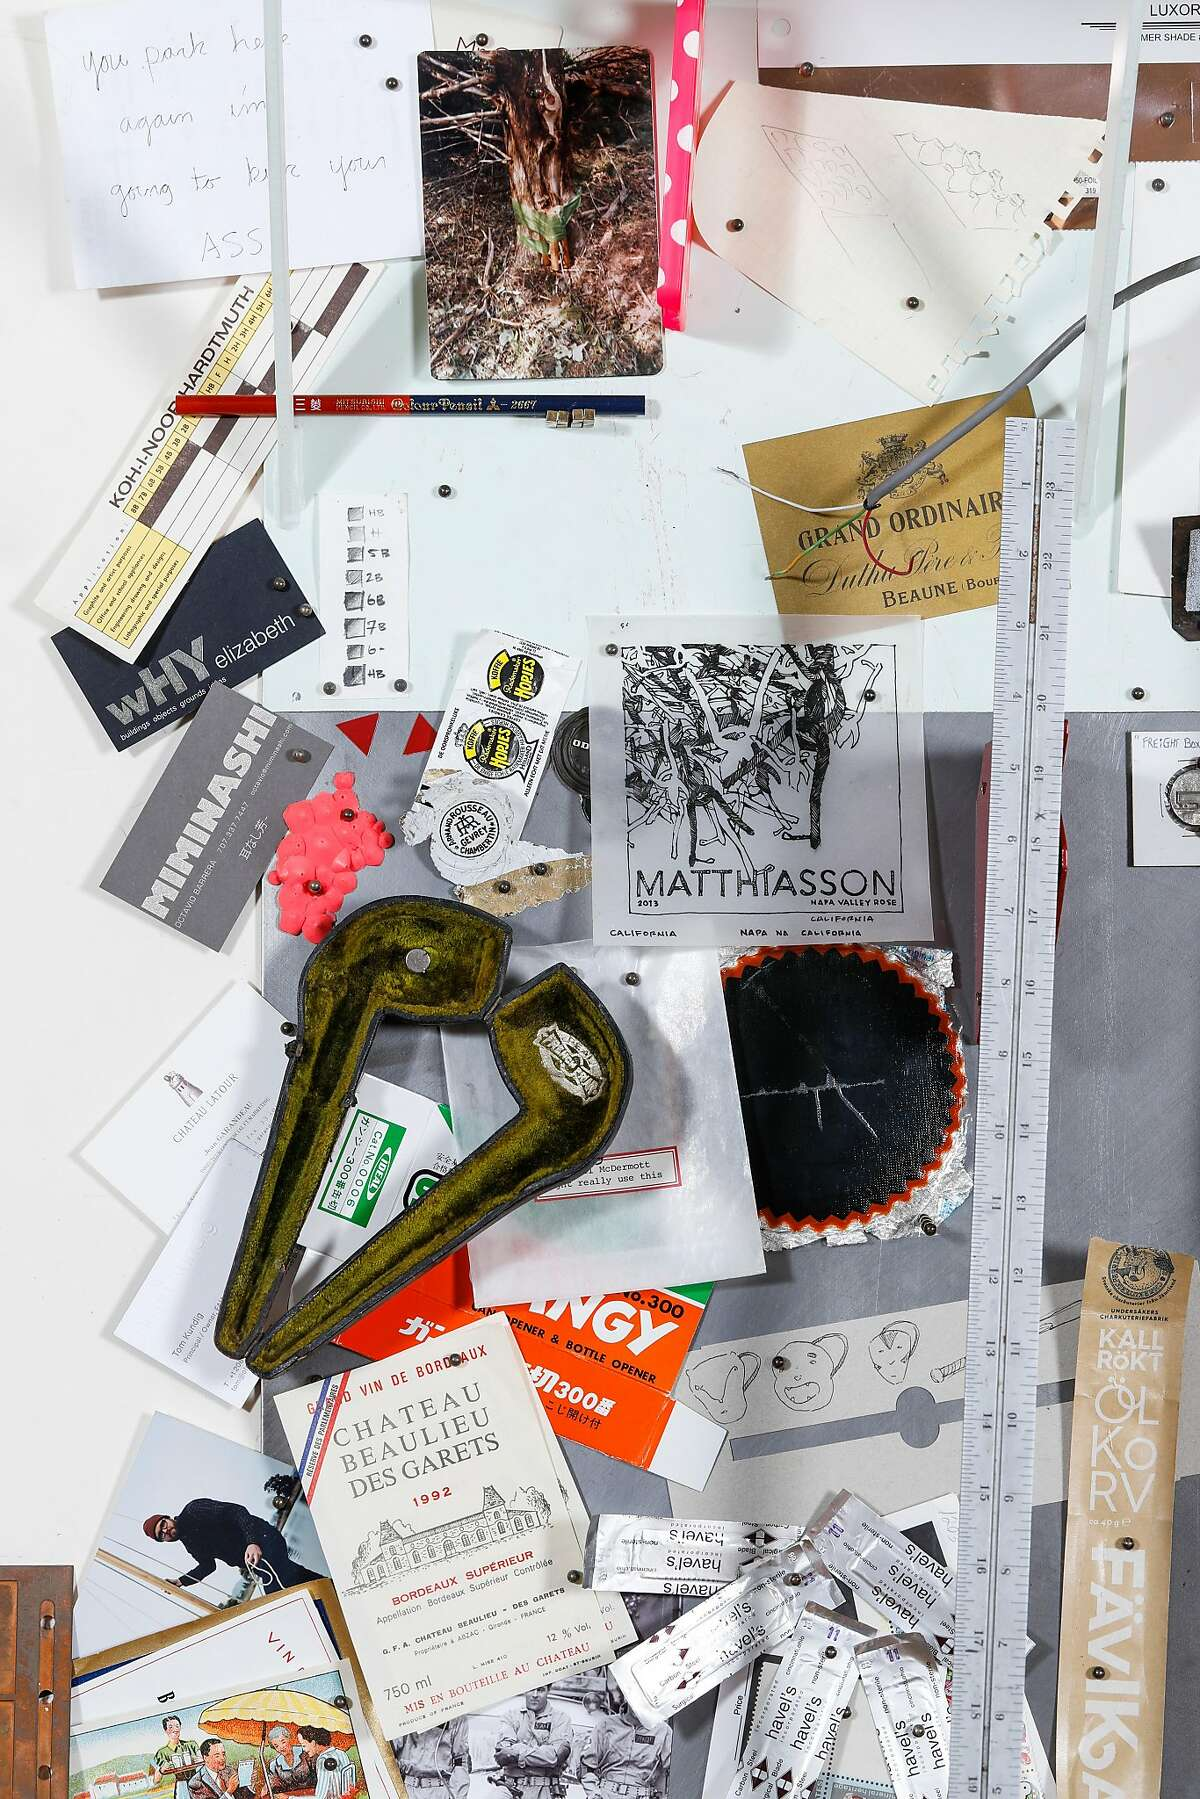 Some of the items that Michael McDermott looks to for inspiration are seen in his studio on Friday, Sept. 28, 2018 in Napa, Calif.